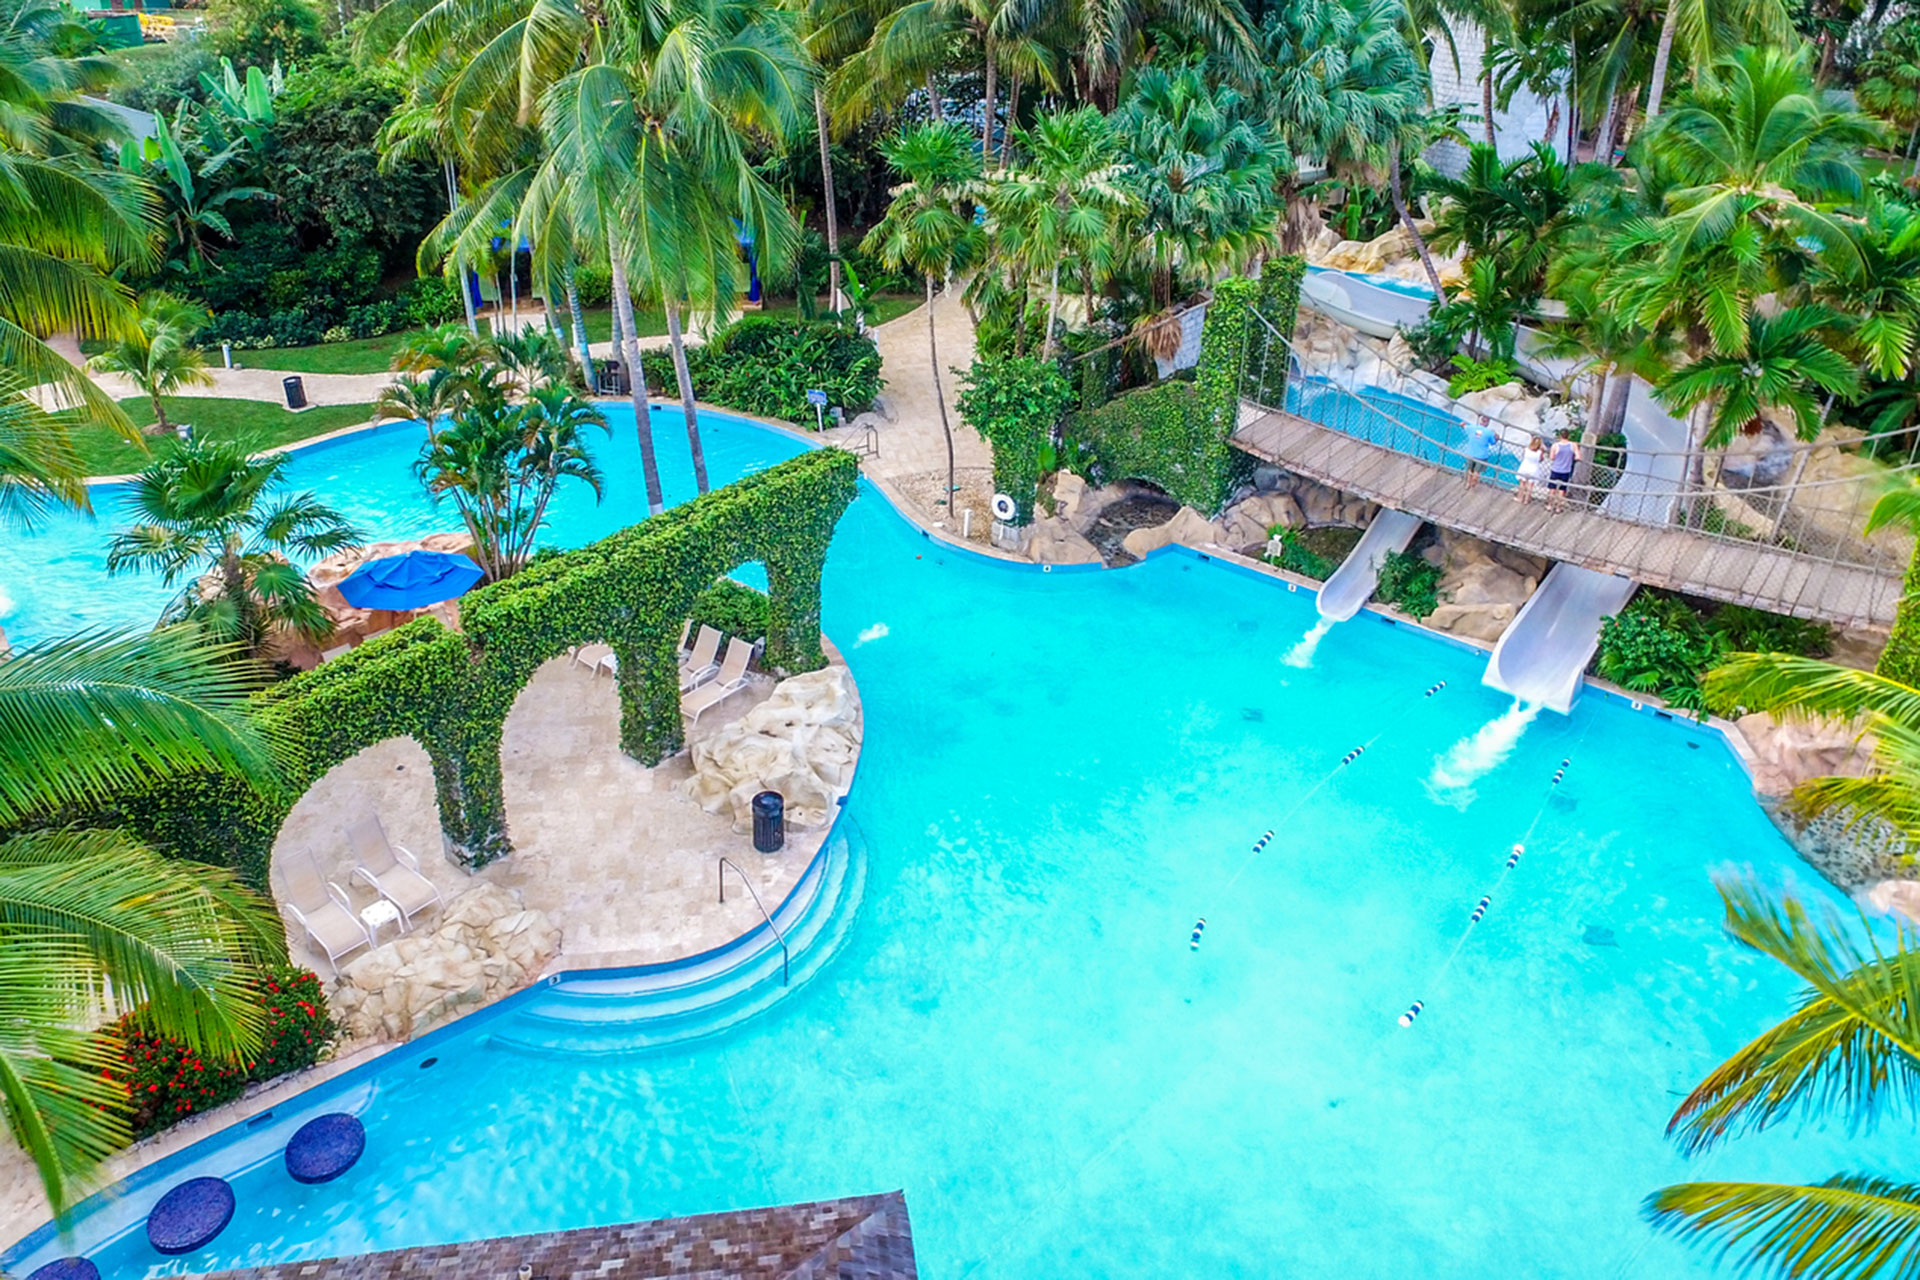 Water Park at Hilton Rose Hall Resort & Spa; Courtesy of Hilton Rose Hall Resort & Spa